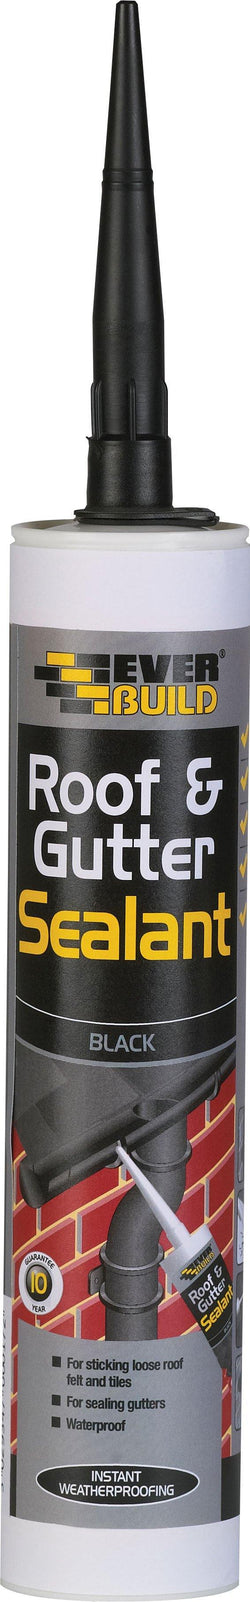 Everbuild Roof & Gutter Sealant - HomeFix